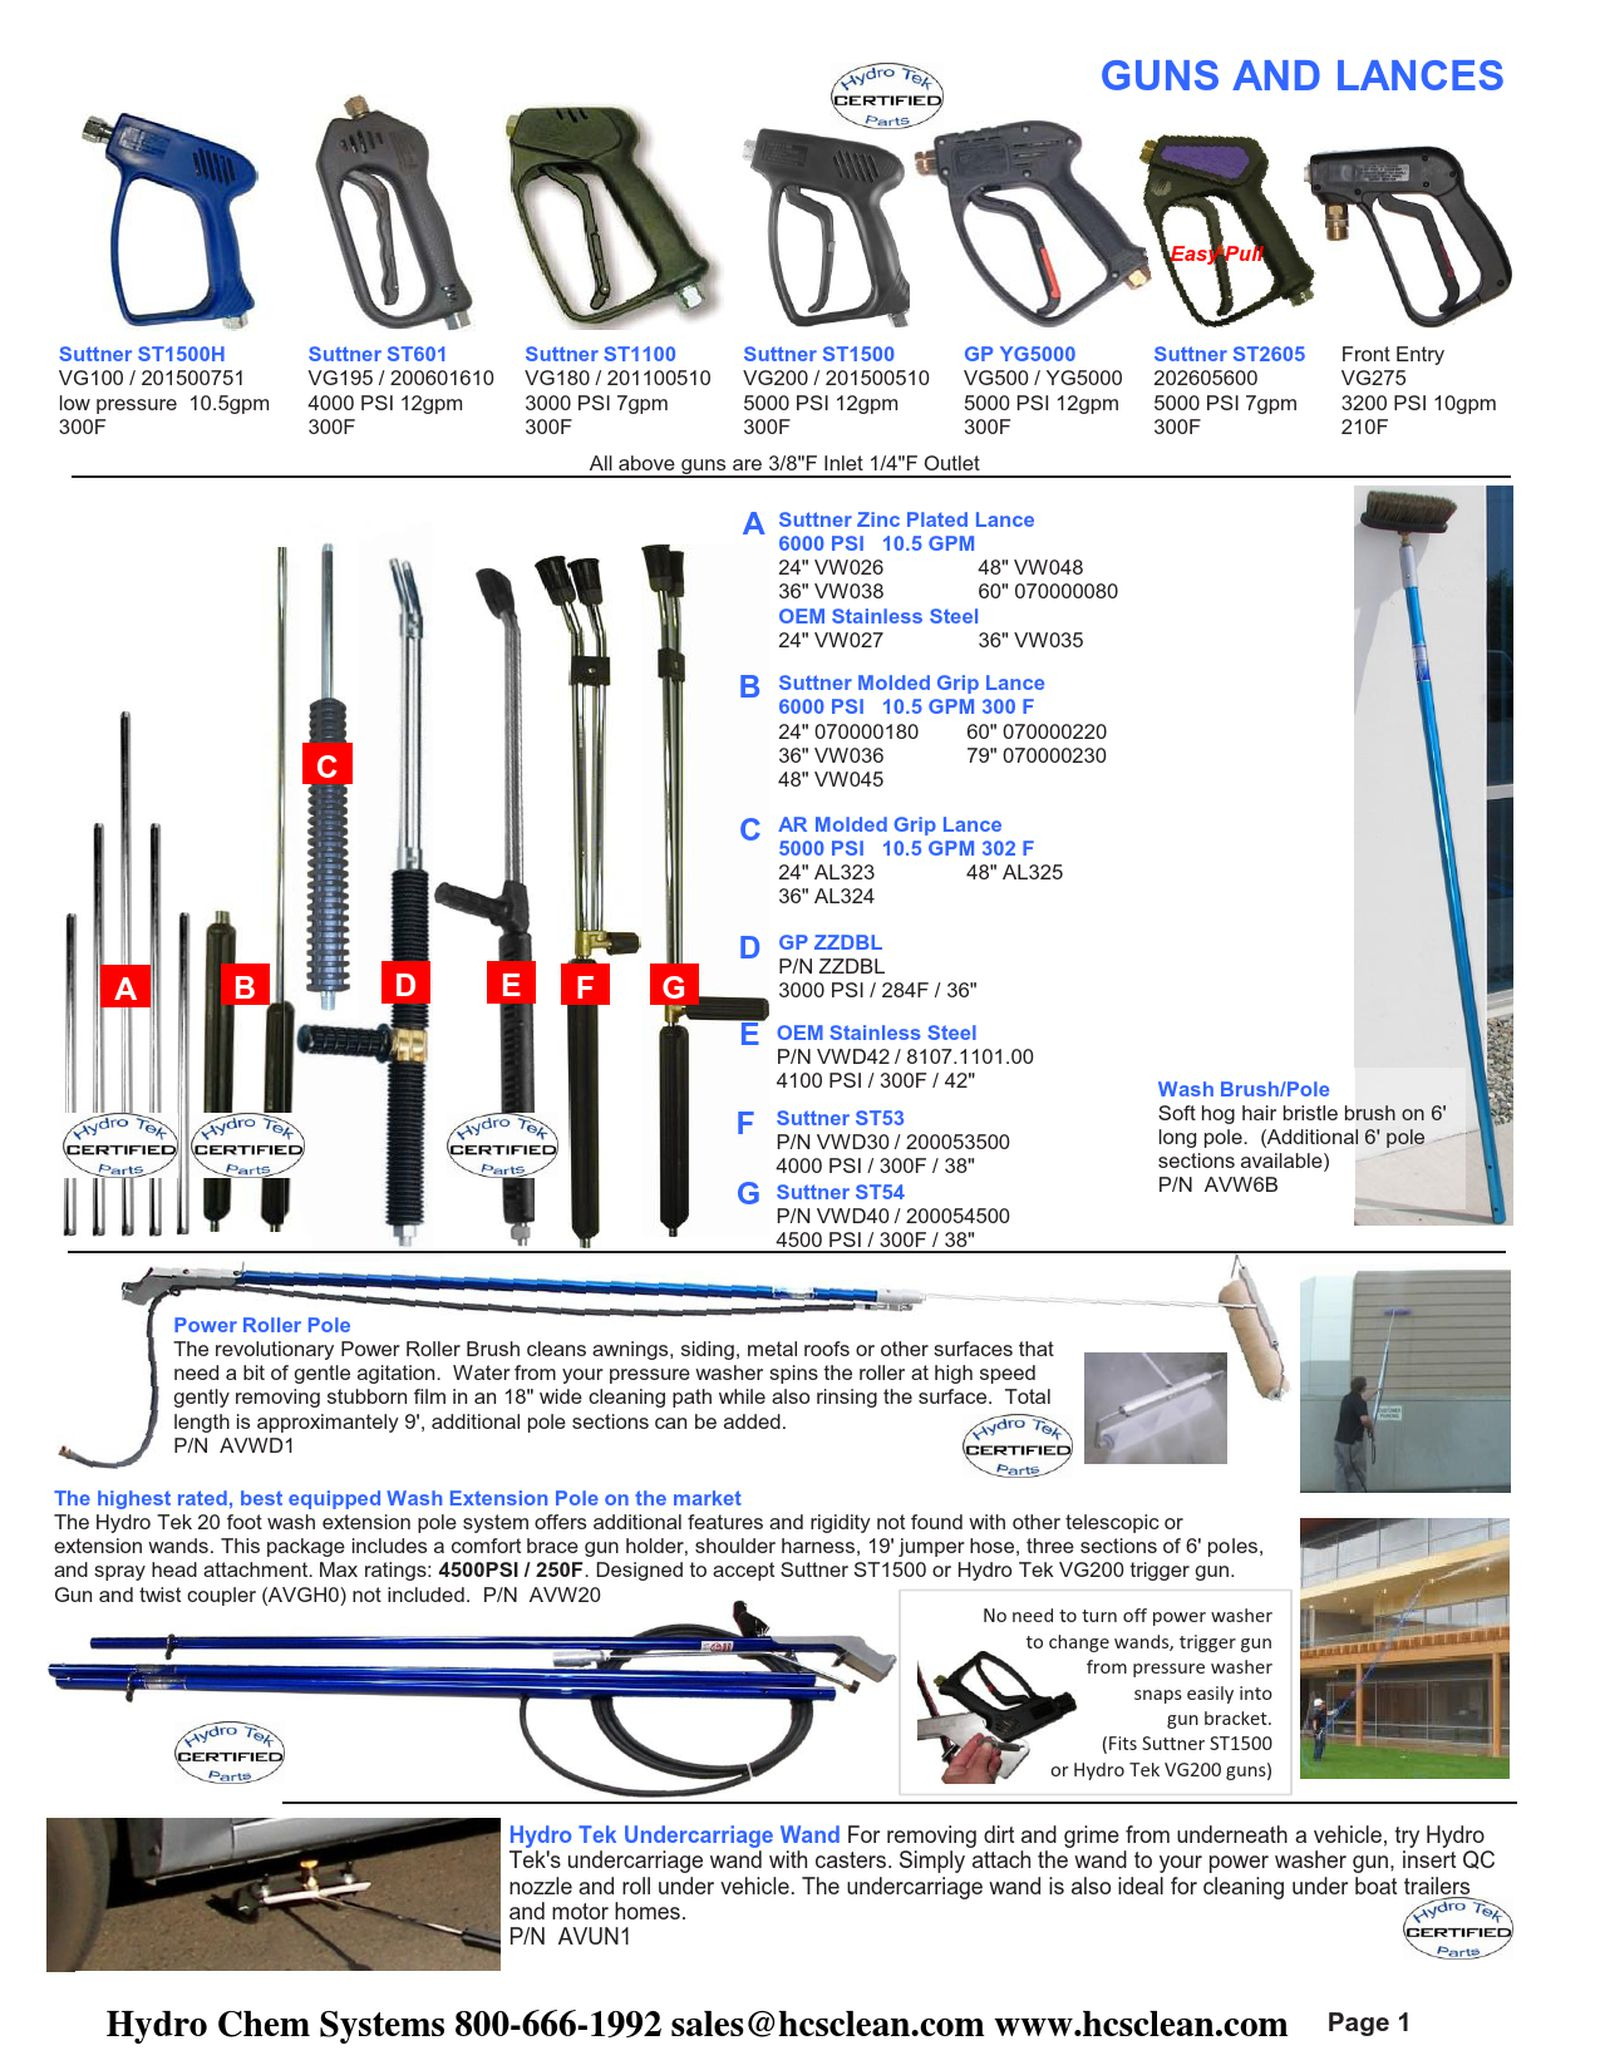 hydrotek pressure washer wiring diagram Collection-Hydro Tek Systems Parts & Accessories Price Book 2013 2014 2-h